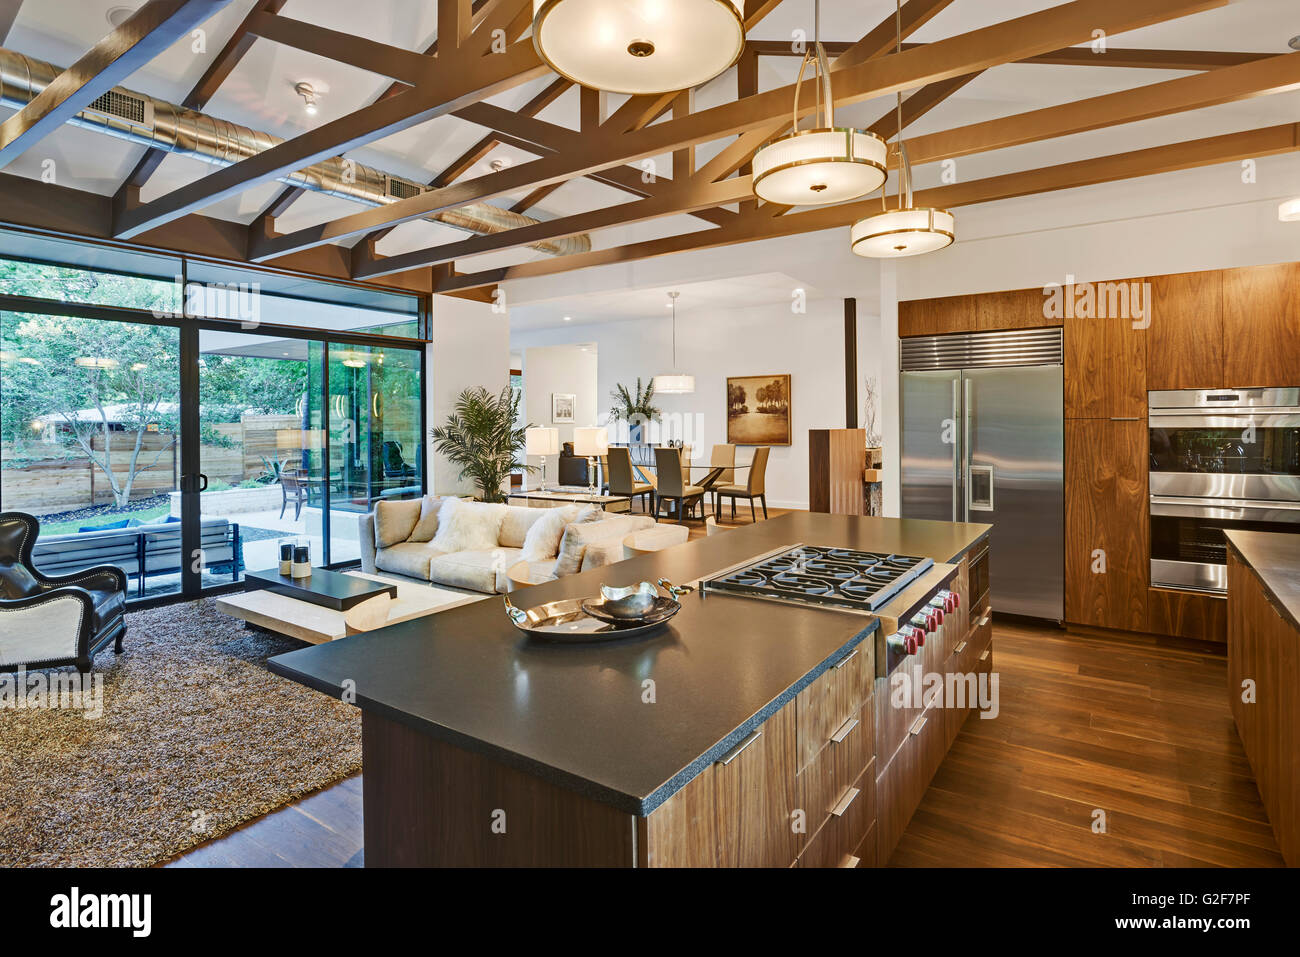 open floor plan of house with kitchen, living room and dining room